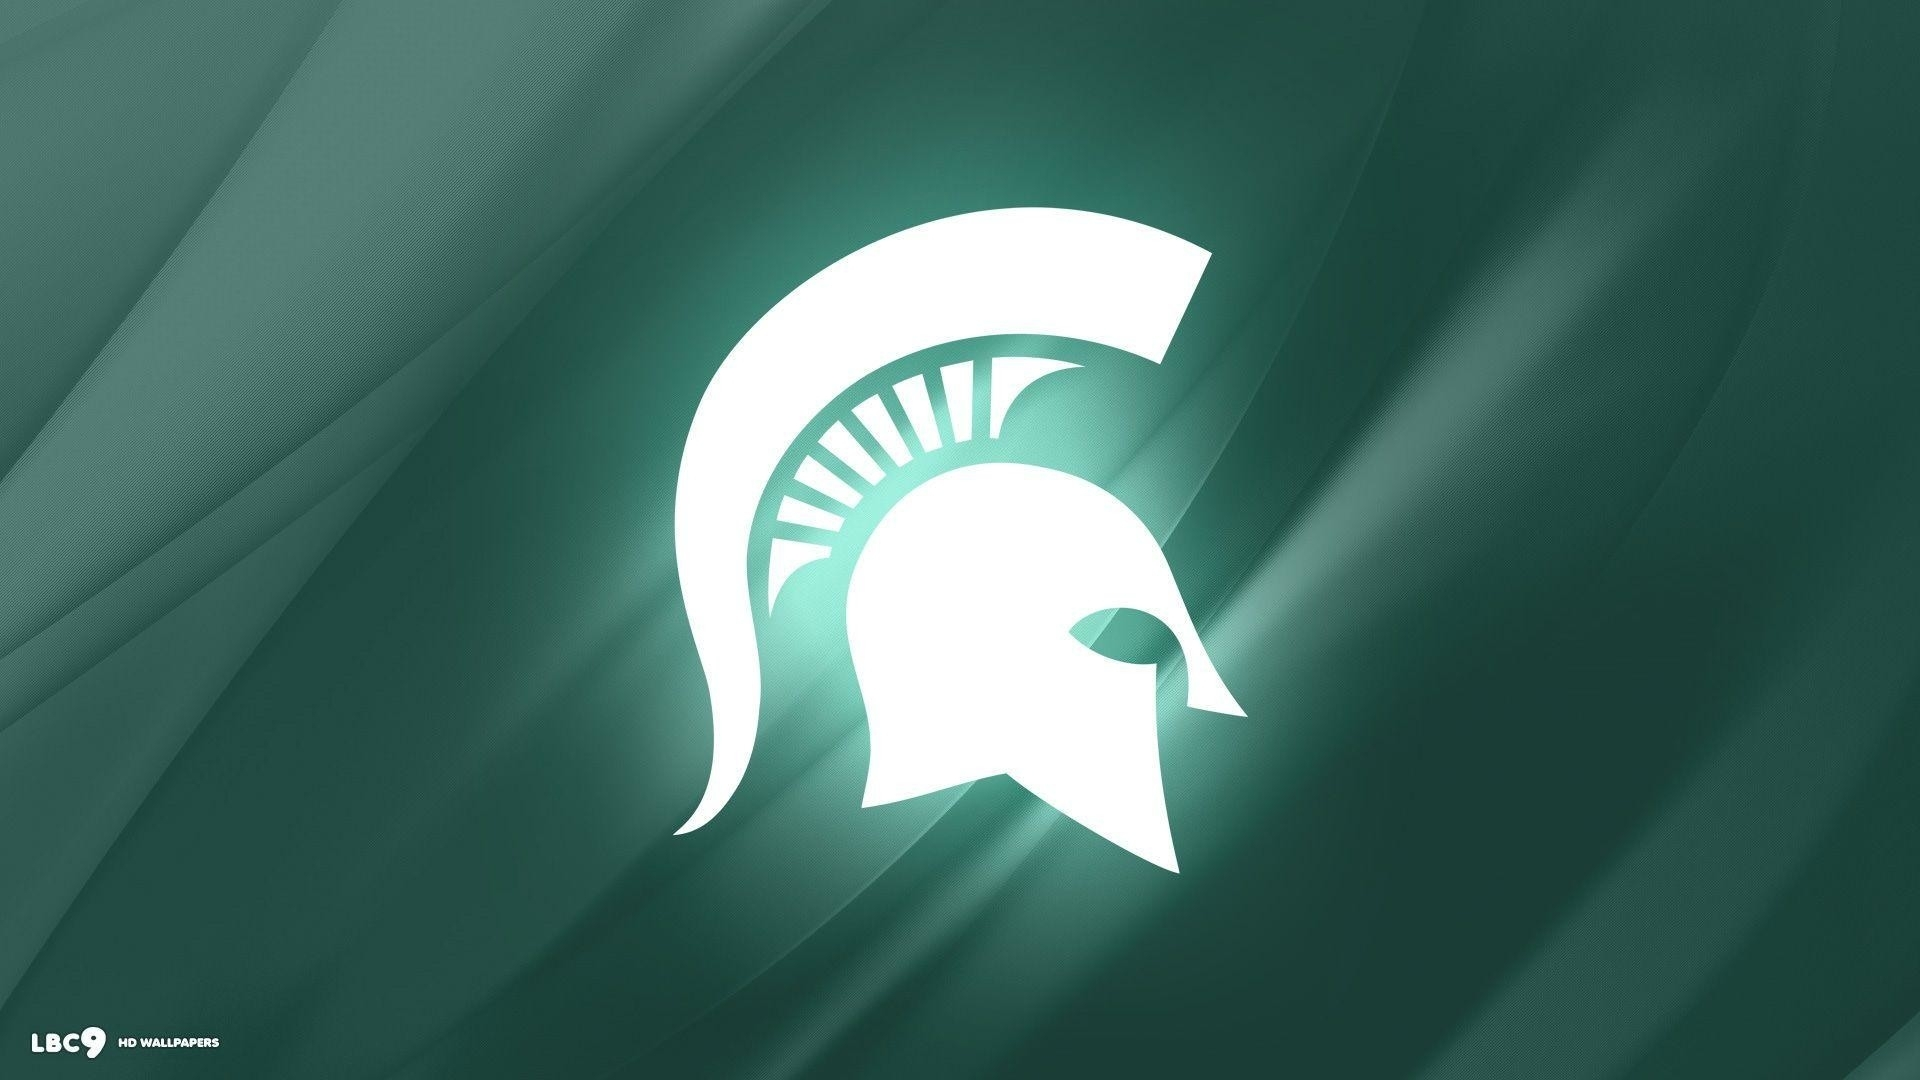 michigan state football wallpaper hd (73+ images)